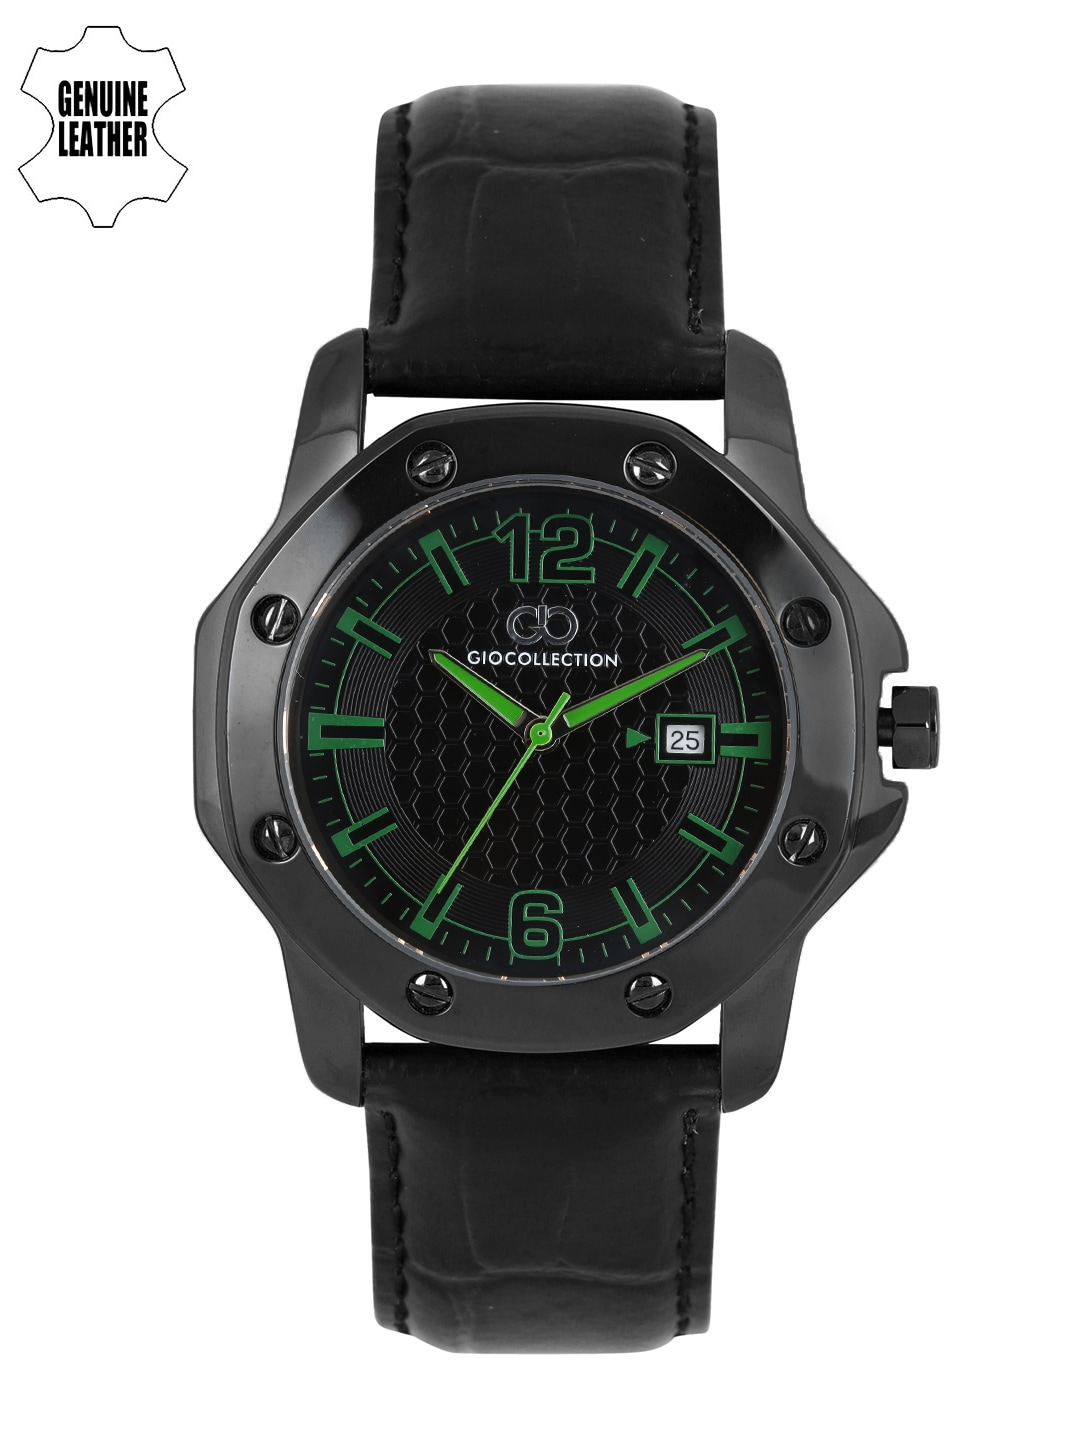 GIO COLLECTION Men Black Analogue Watch G1004-05